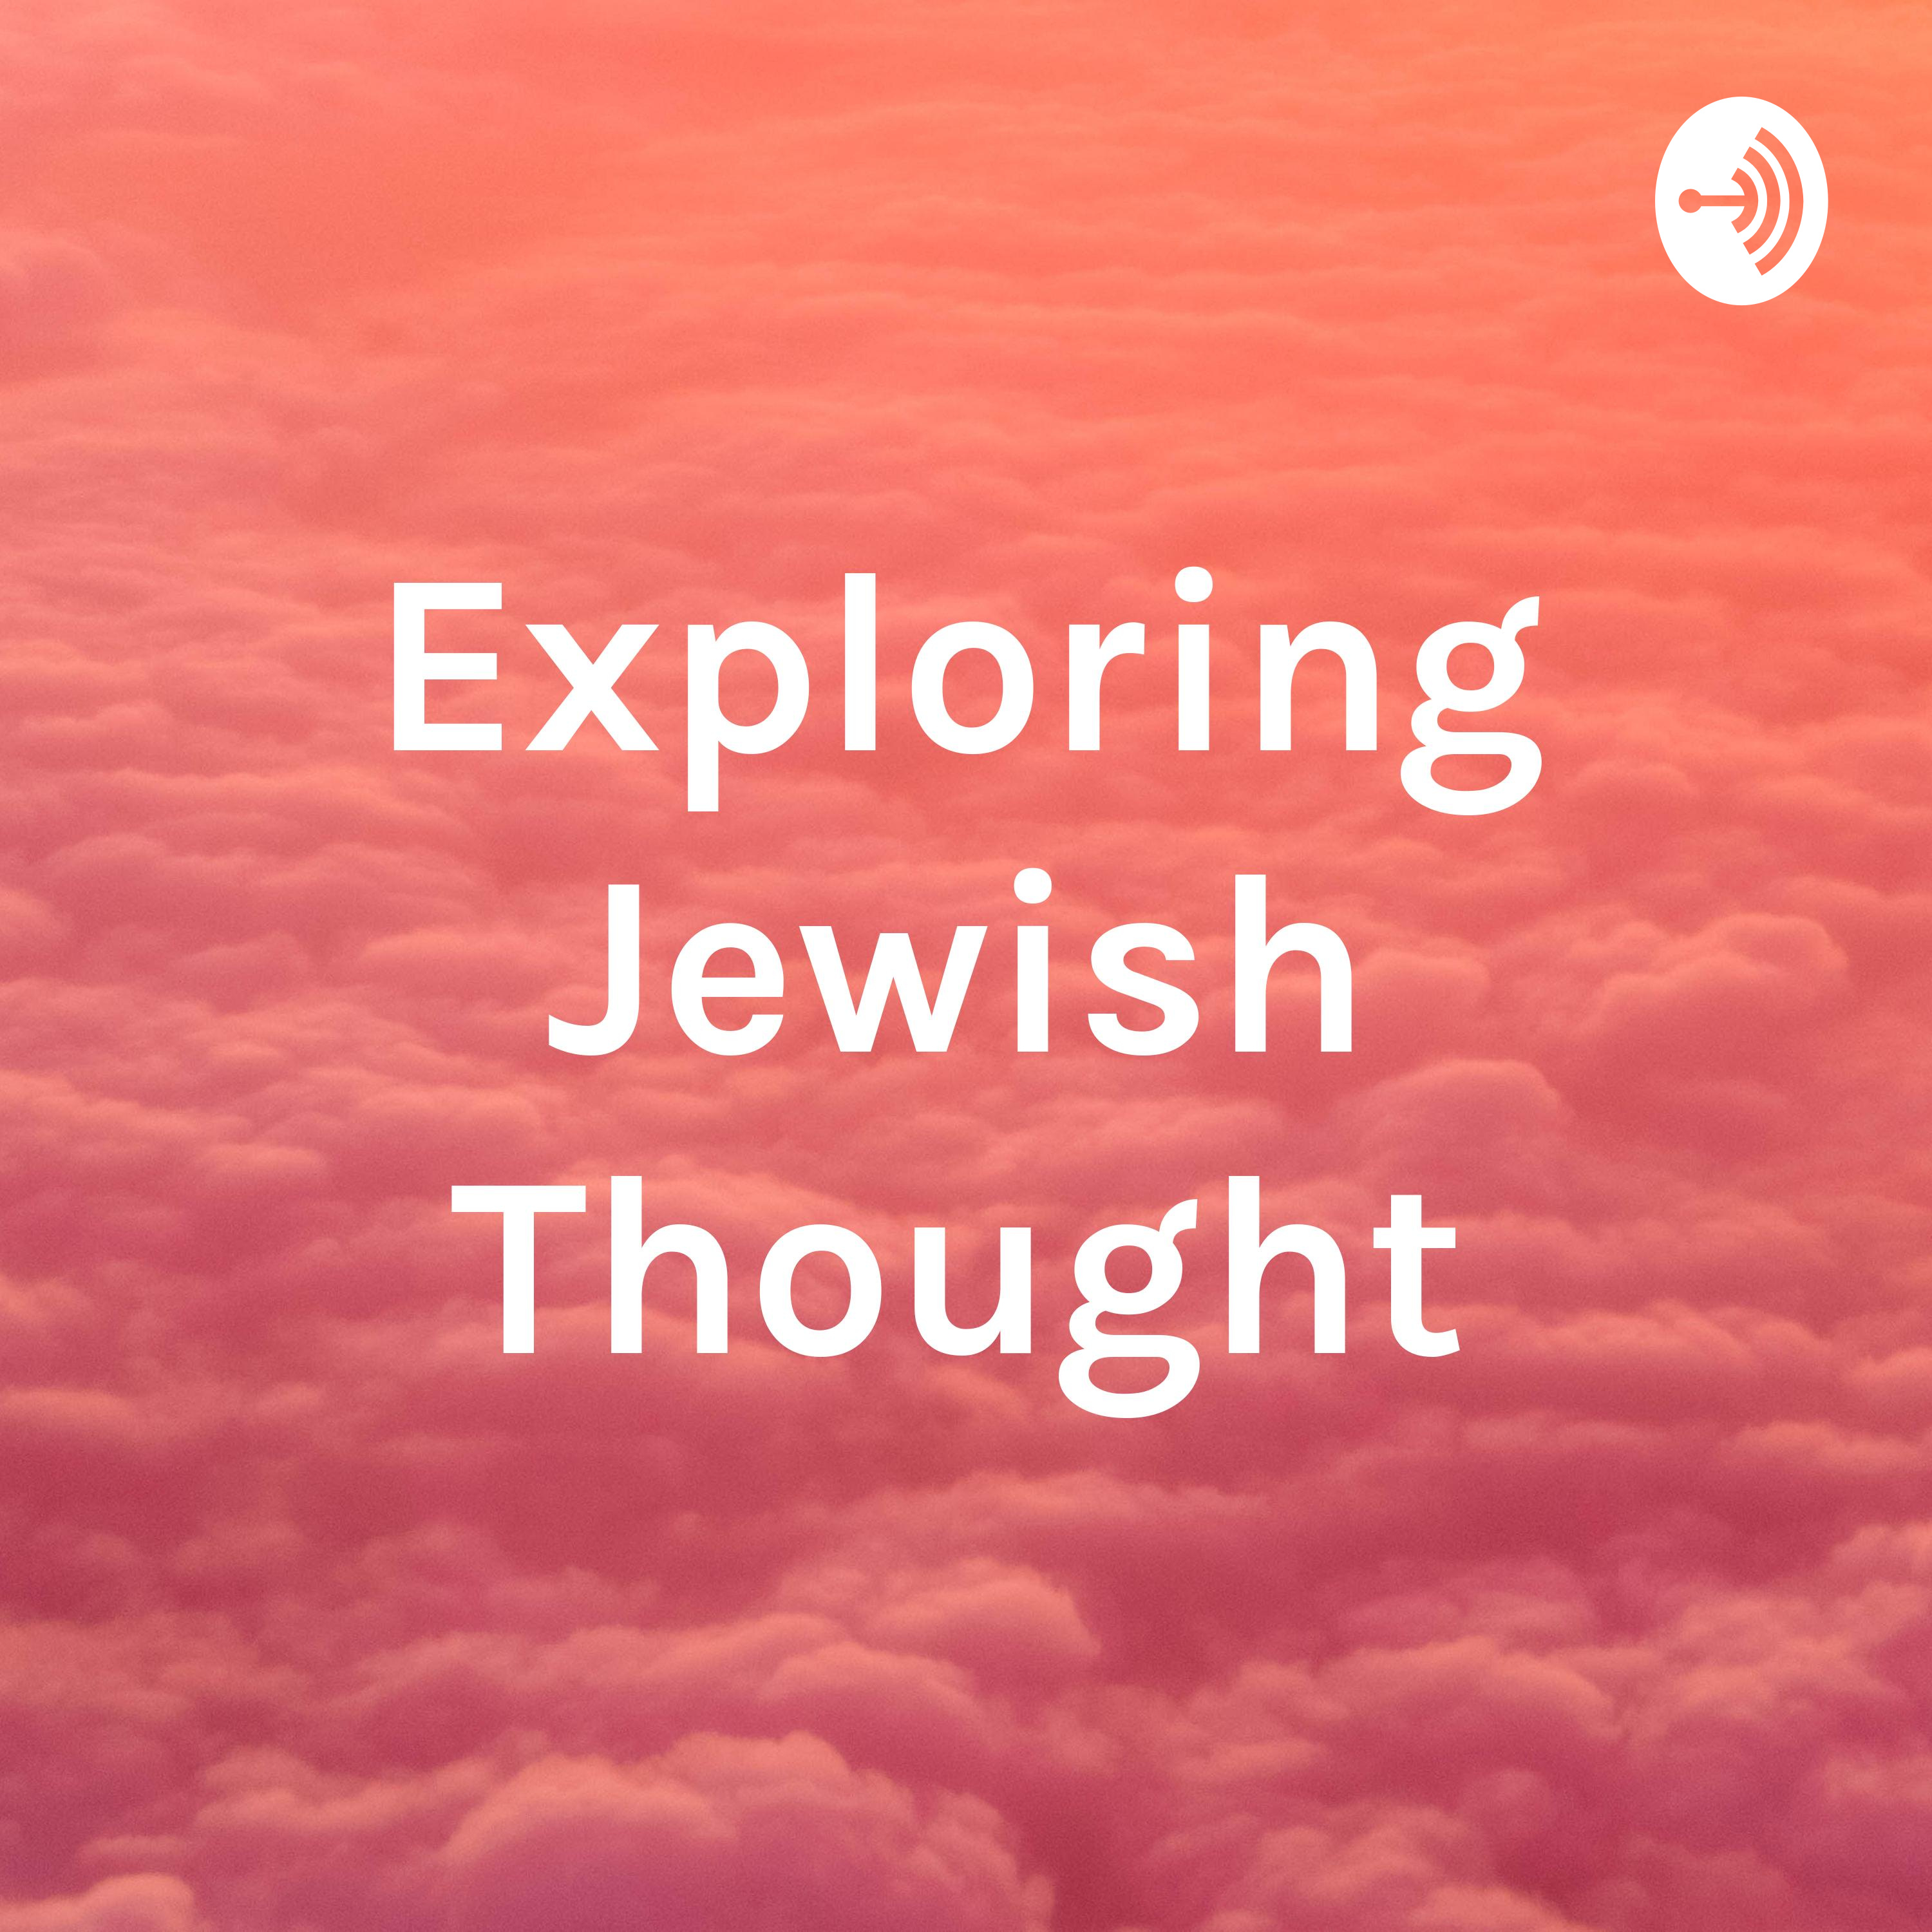 Apple Podcasts : Mexico : Judaism Podcast Charts - Chartable